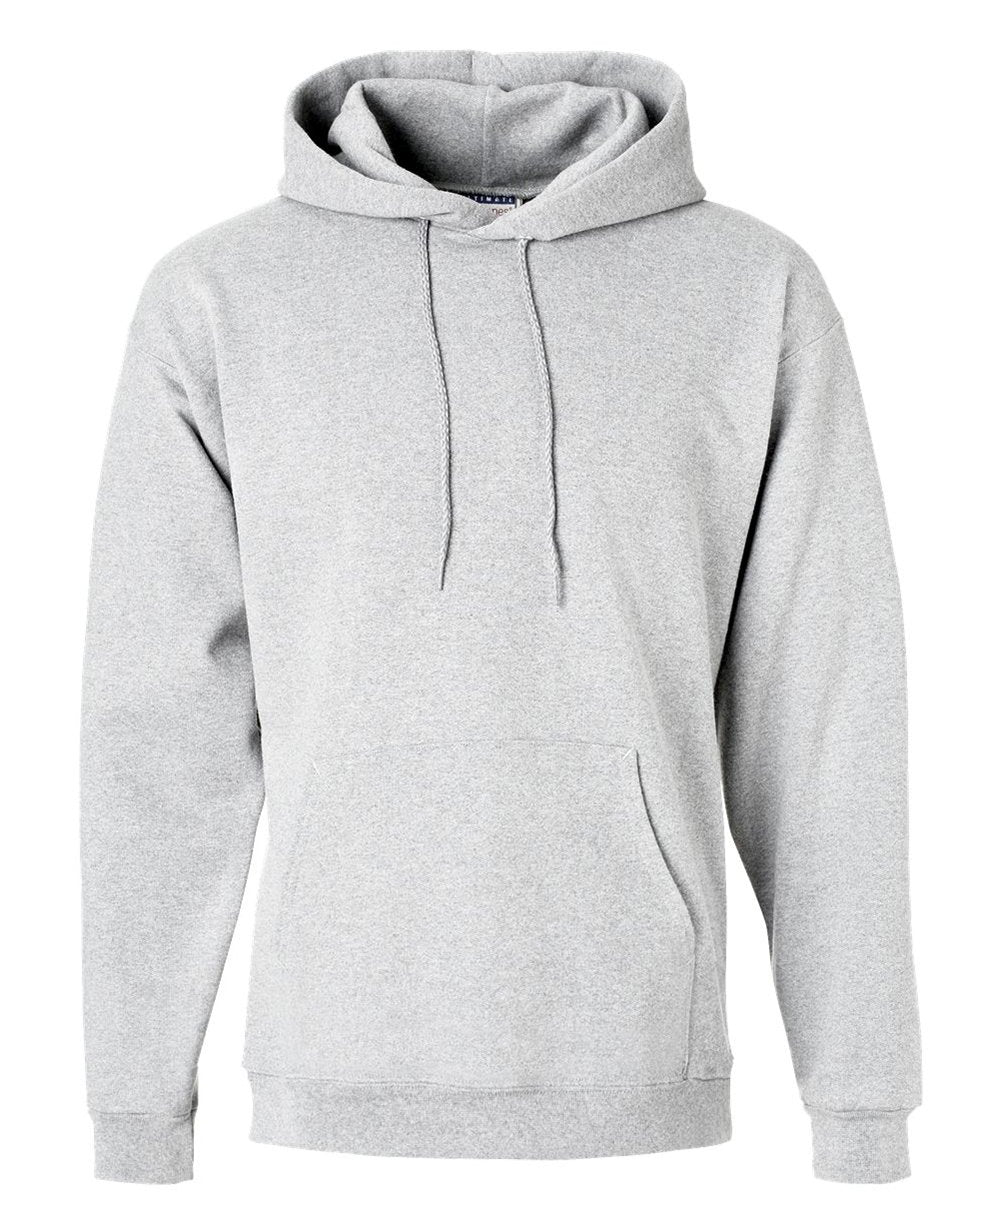 Pullover Hoodies in Ash